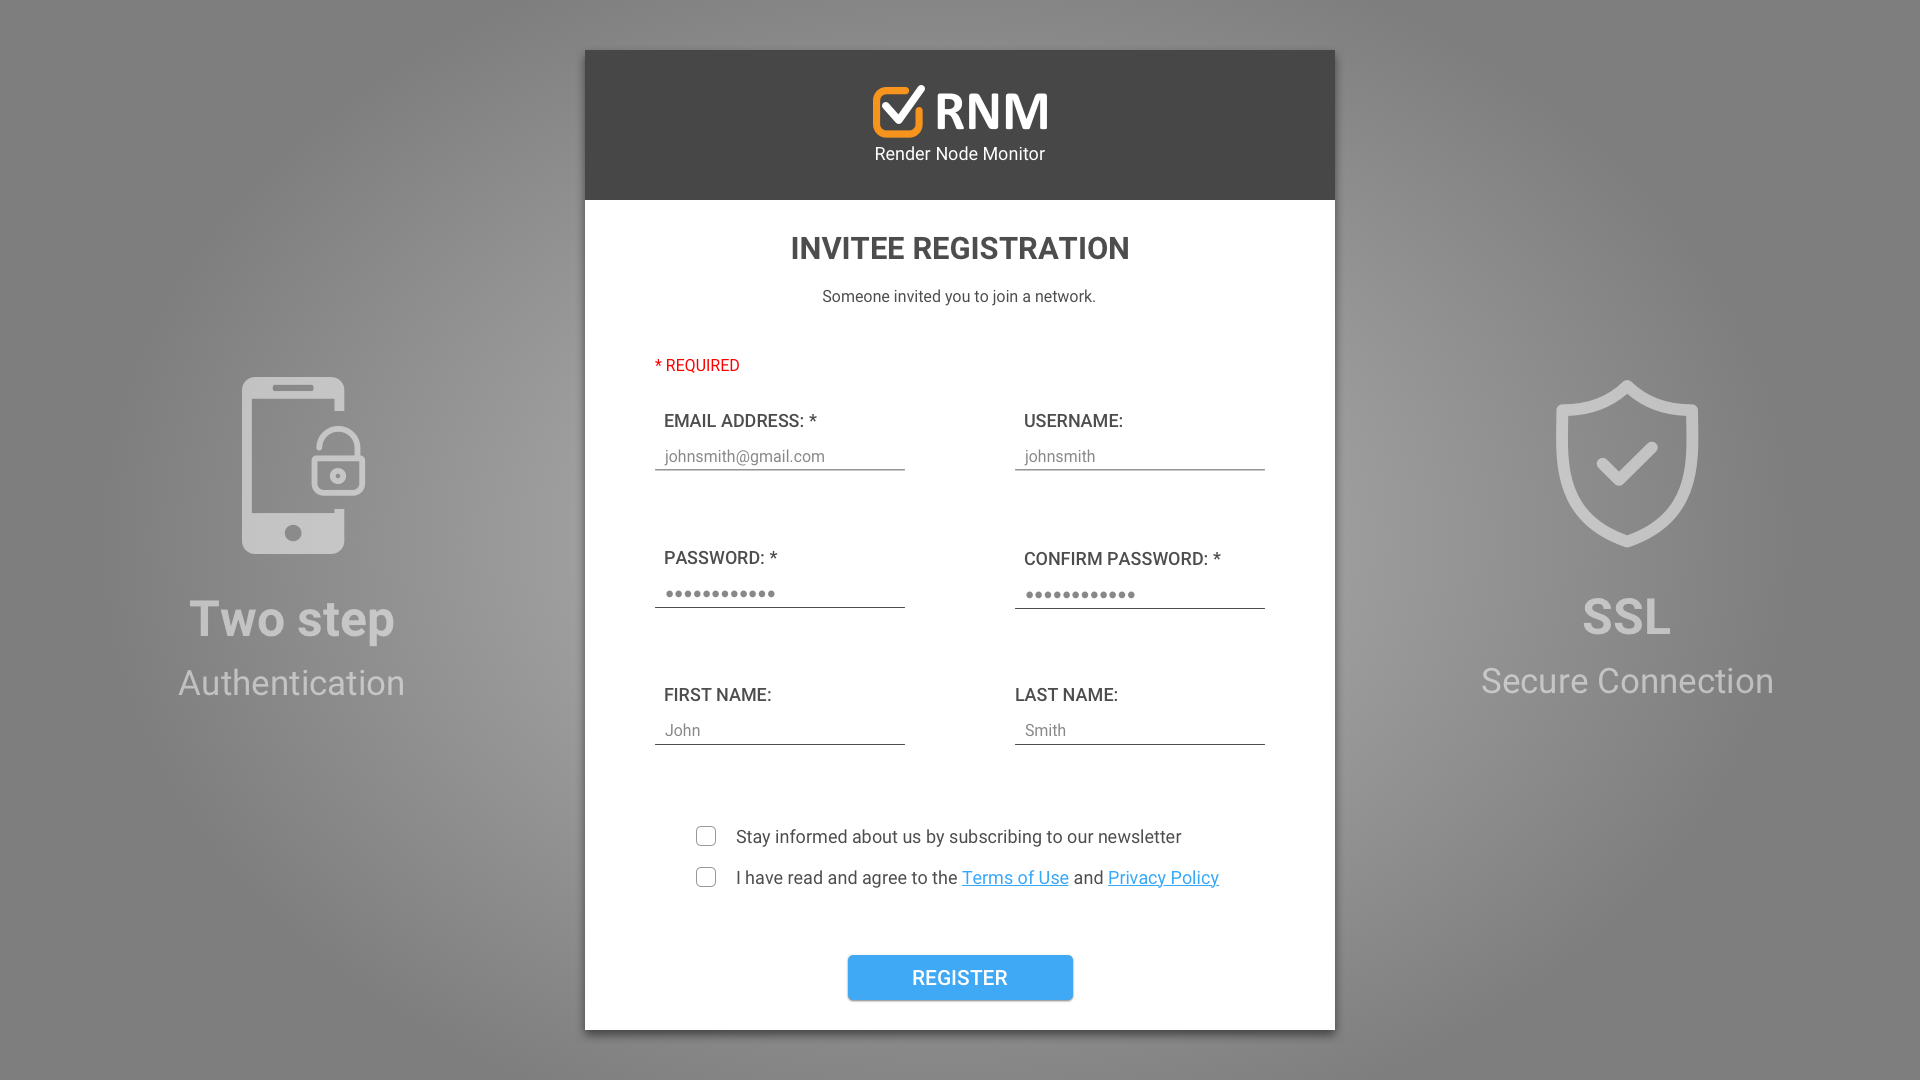 1920_00.1_INVITEE_REGISTRATION